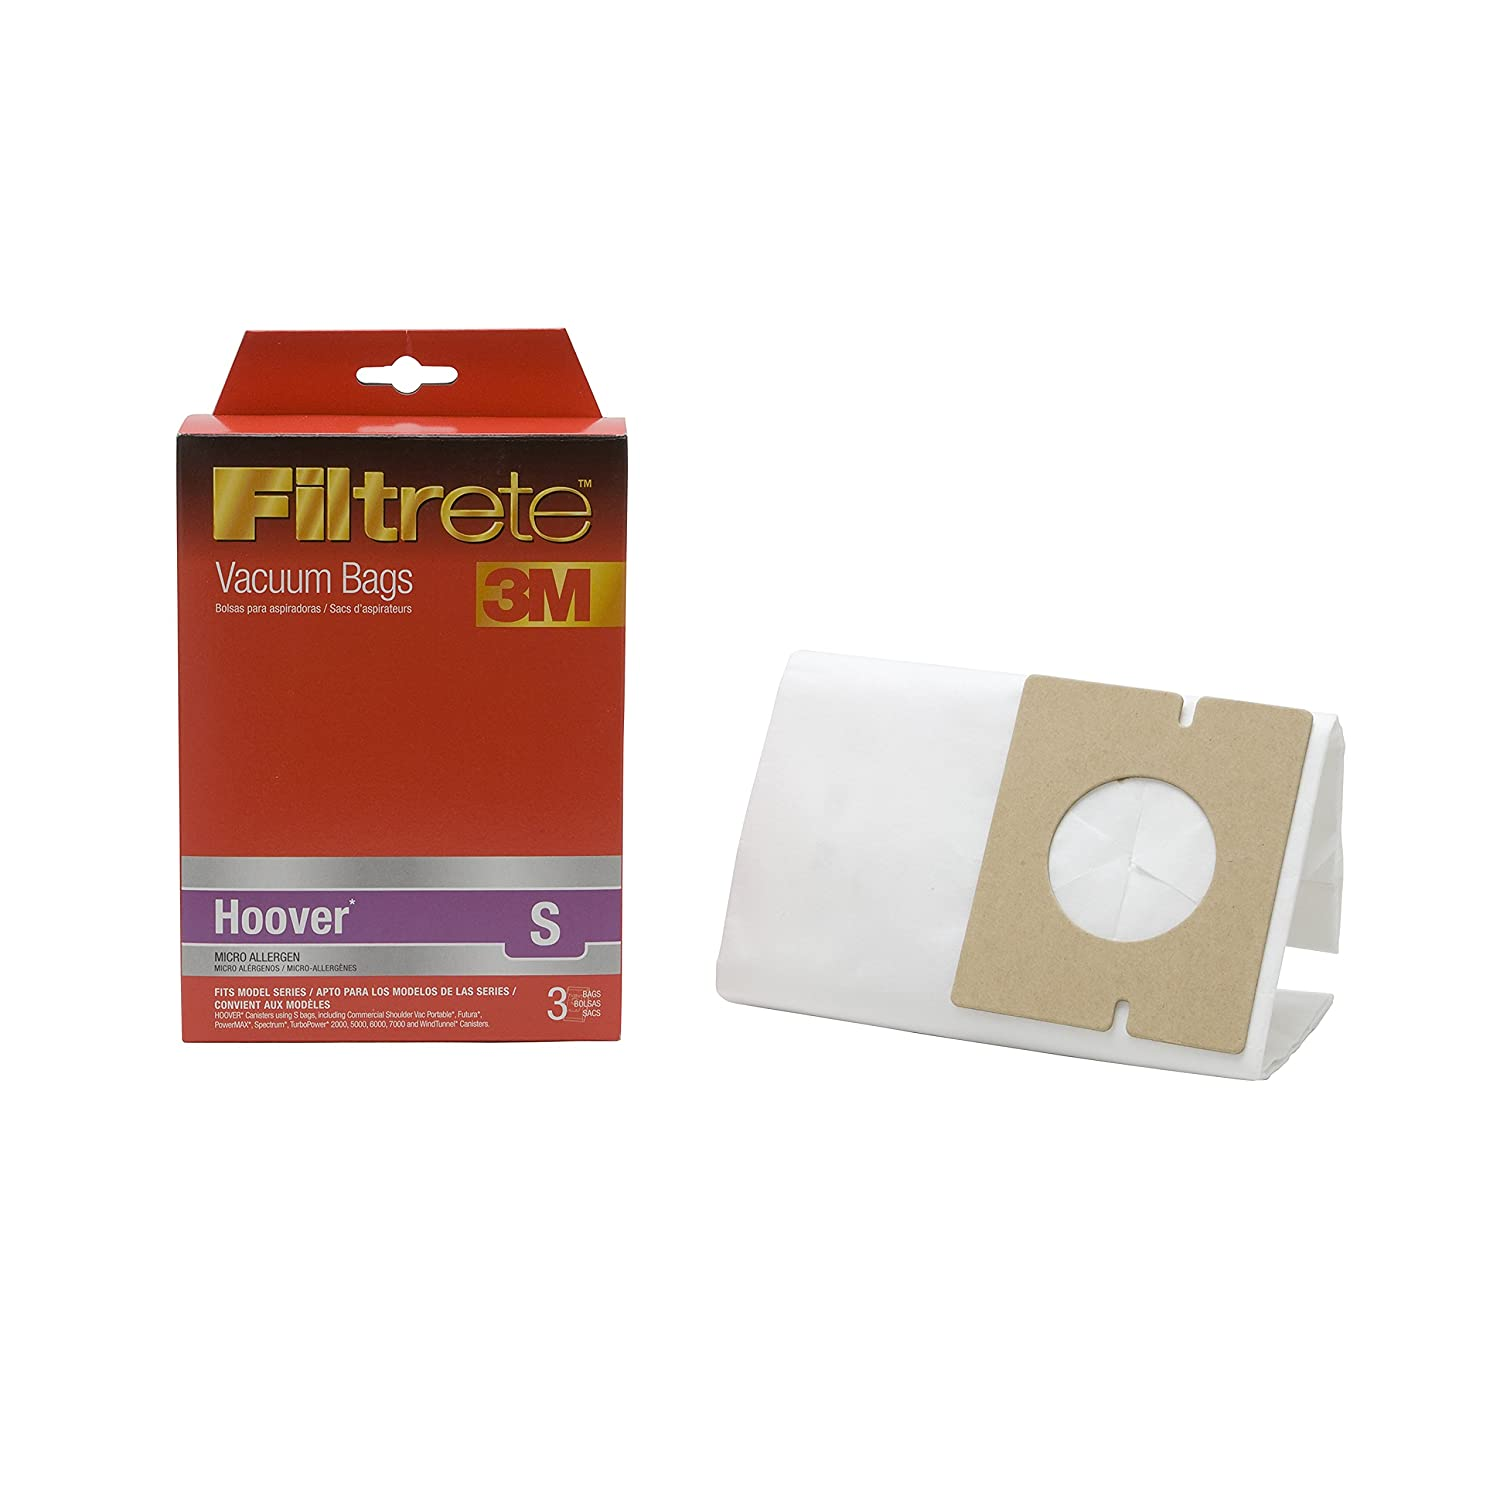 Amazon.com - 3M Filtrete Hoover S Micro Allergen Vacuum Bag - Household Vacuum Bags Upright